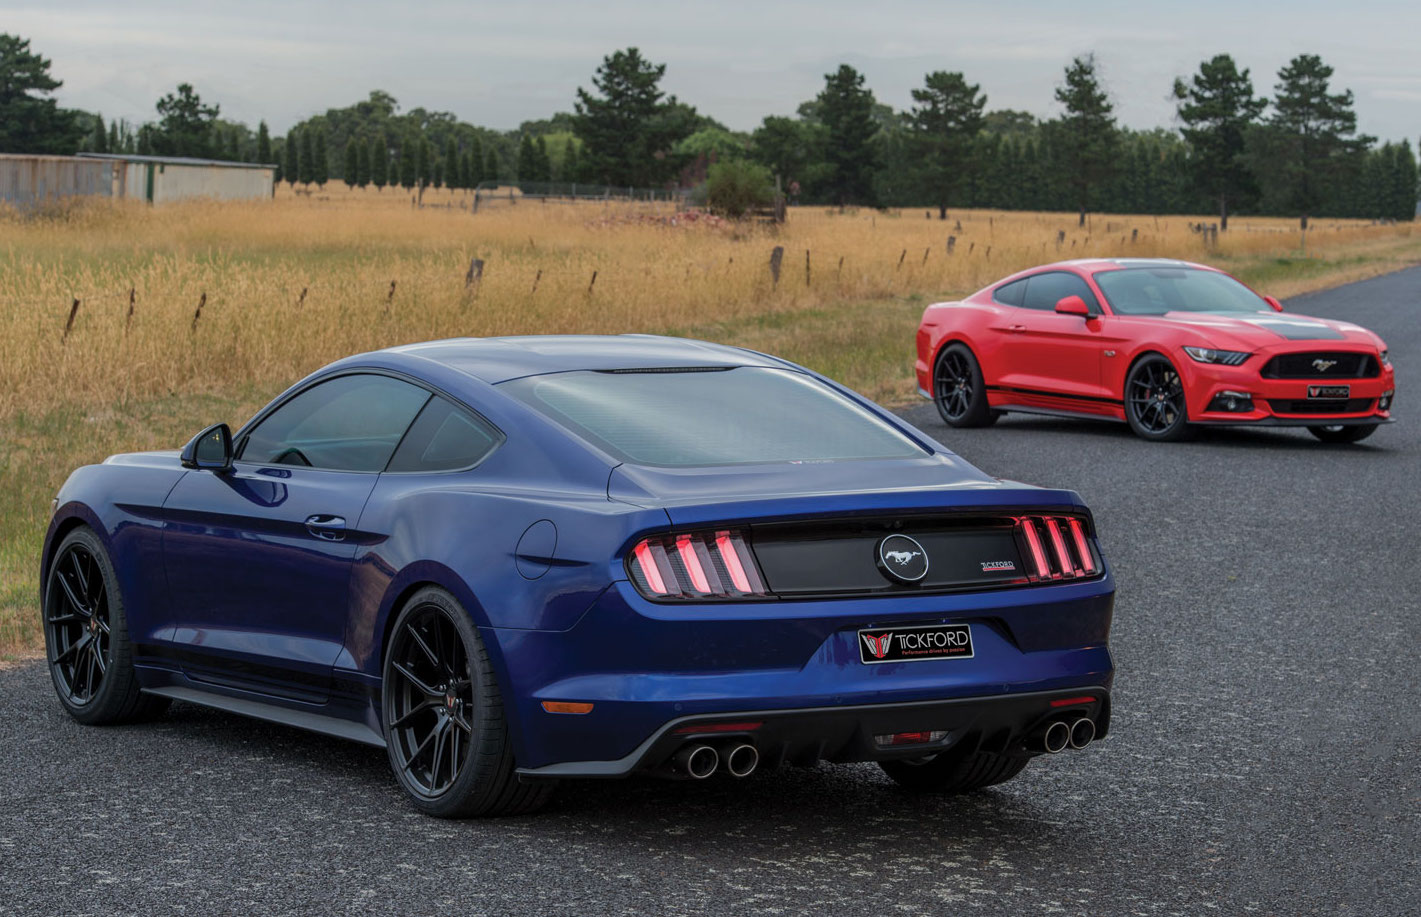 Tickford Announces Tuning Packages For Ford Mustang In Australia